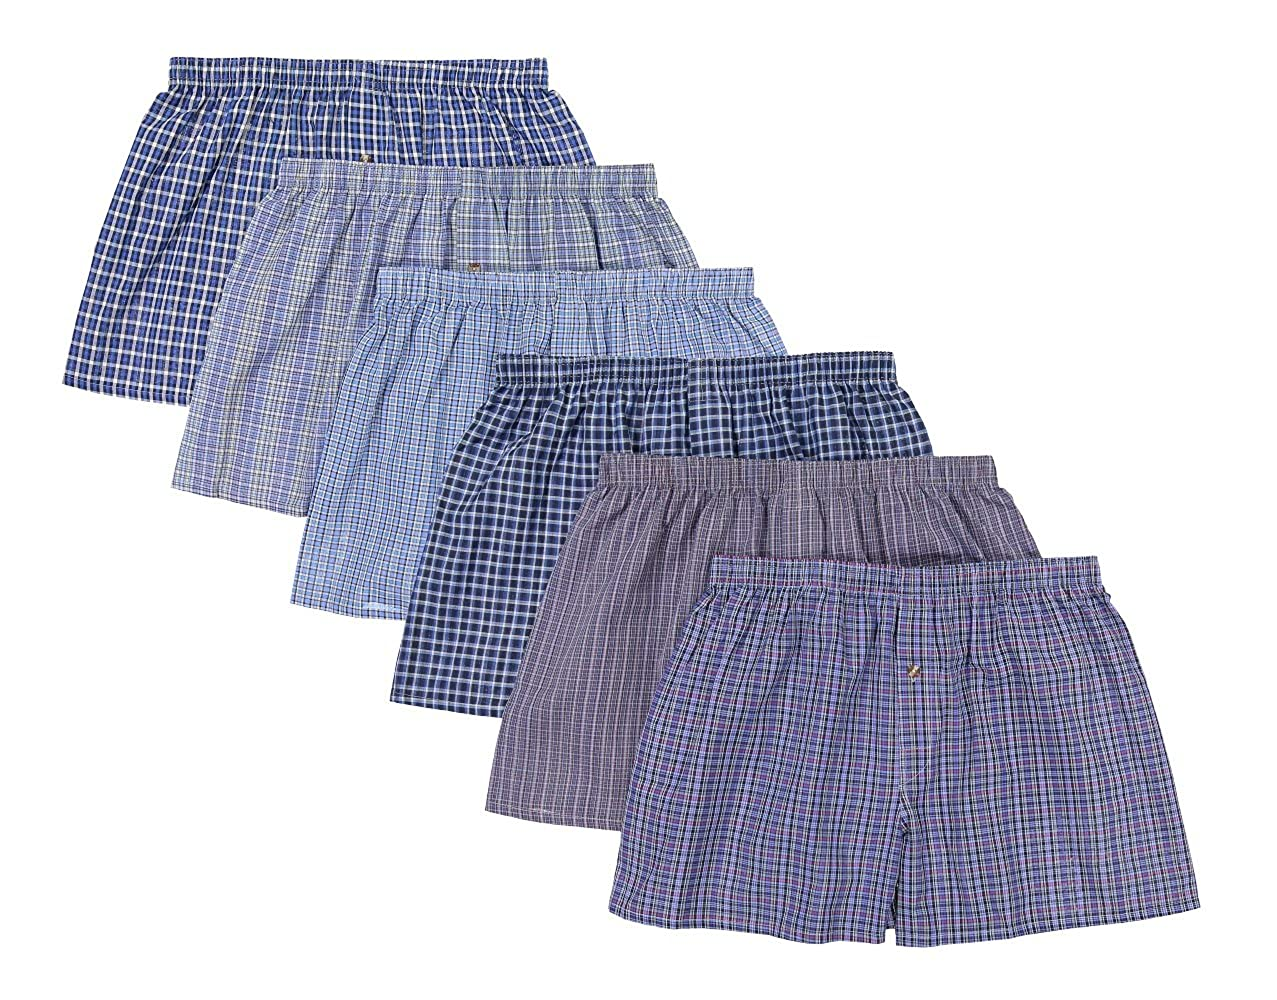 JMR Men's 100% Cotton Plaid Boxer Shorts Underwear 6pk